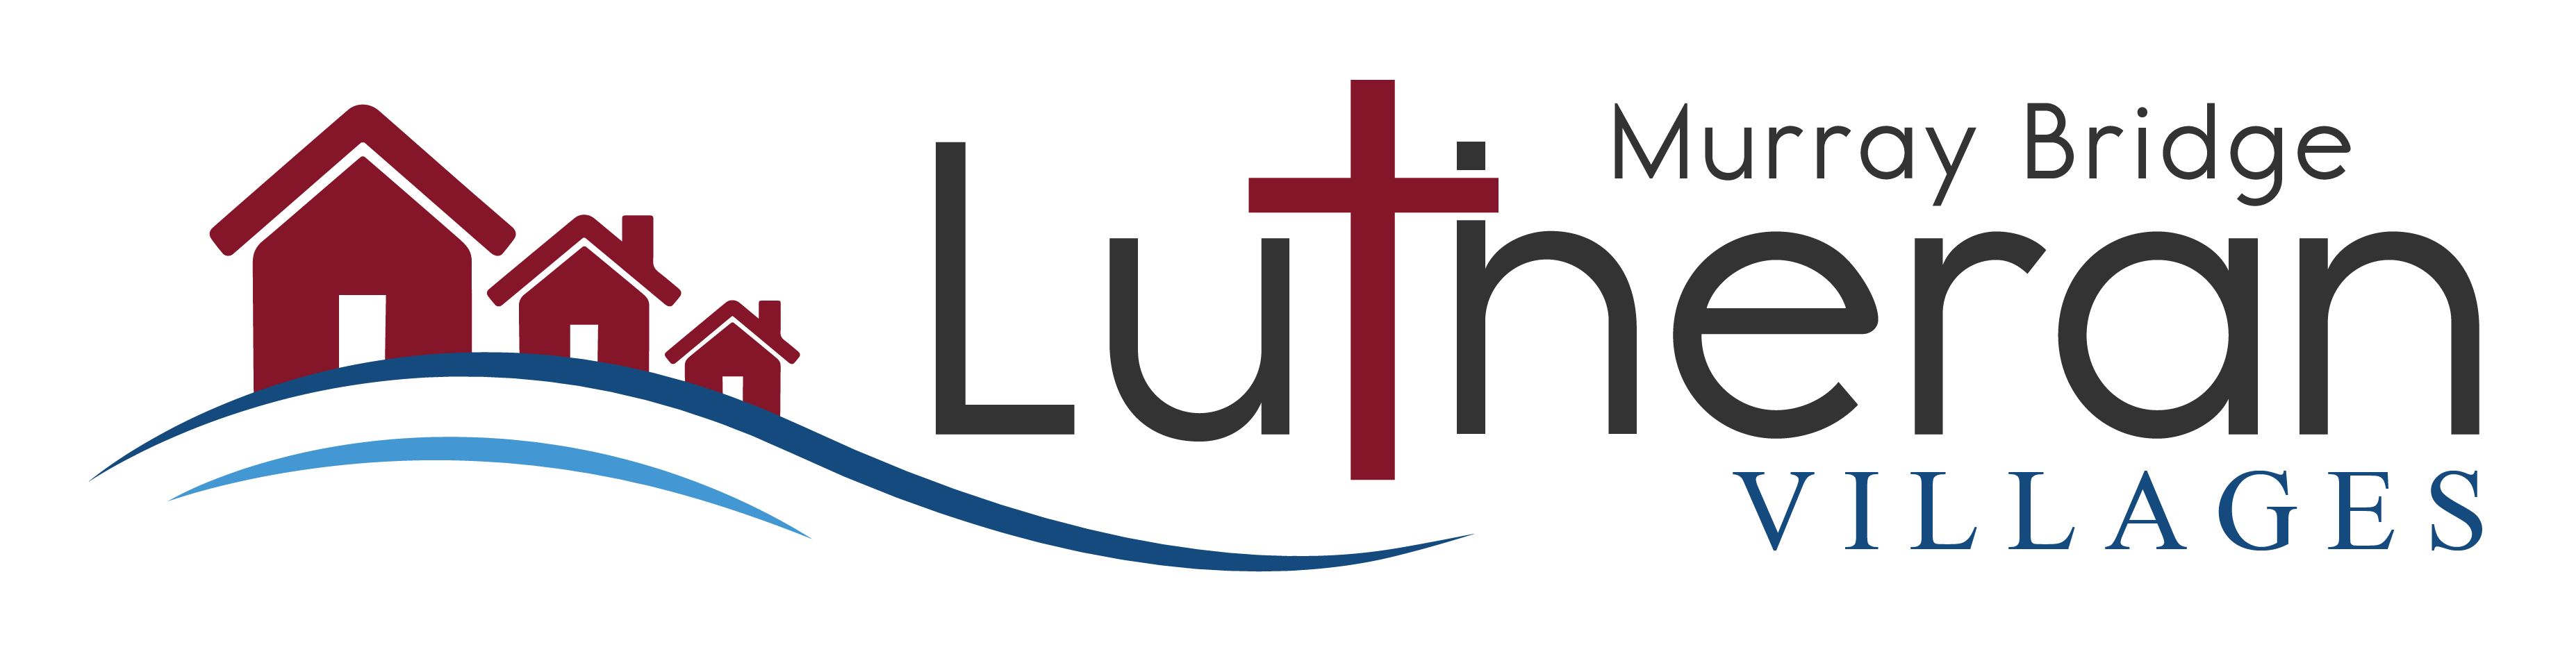 Murray Bridge Lutheran Villages logo